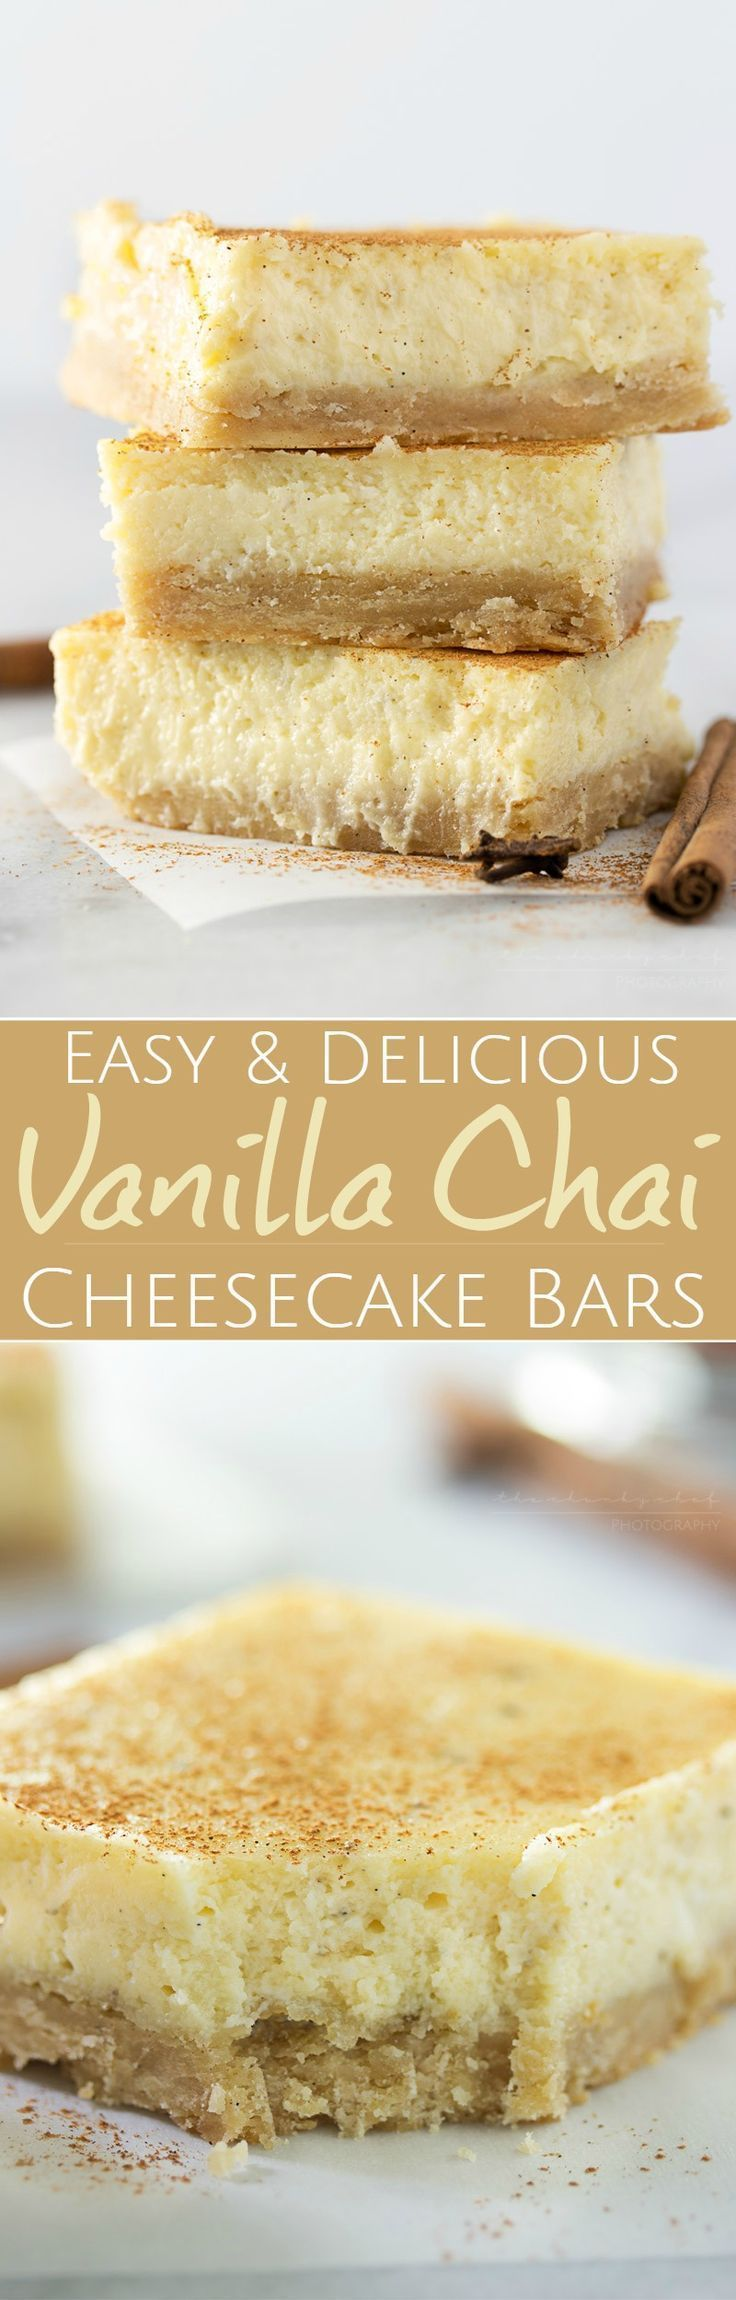 Vanilla Chai Cheesecake Bars | Love cheesecake, but don't want a whole cake? These lusciously creamy cheesecake bars are flavored with chai and vanilla bean for the perfect treat! | thechunkychef.com (Vanilla Cake)